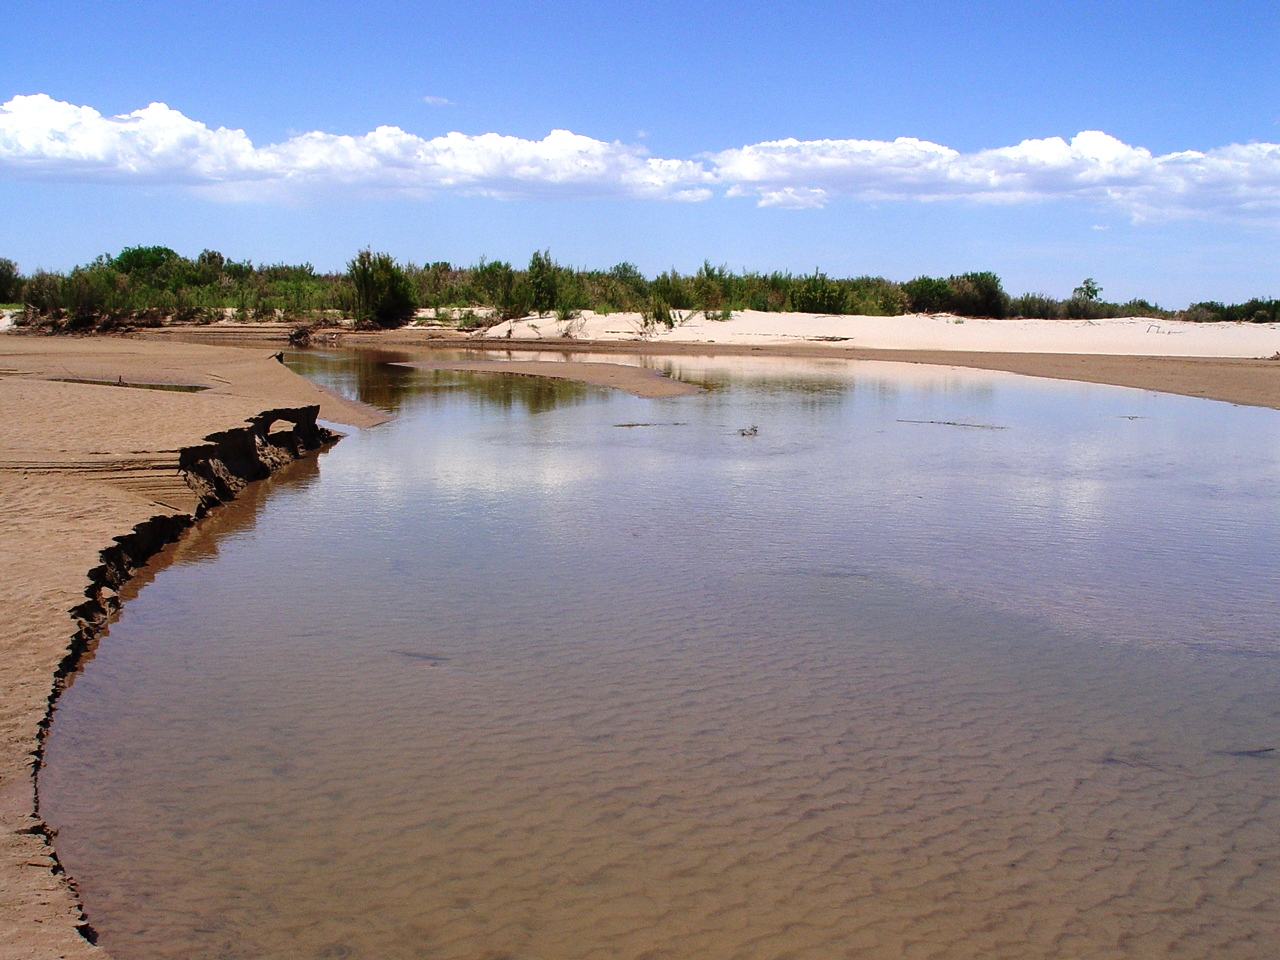 Little Colorado River receding, at Homolovi Ruins State Park, Arizona (http://jamesmcgillis.com)